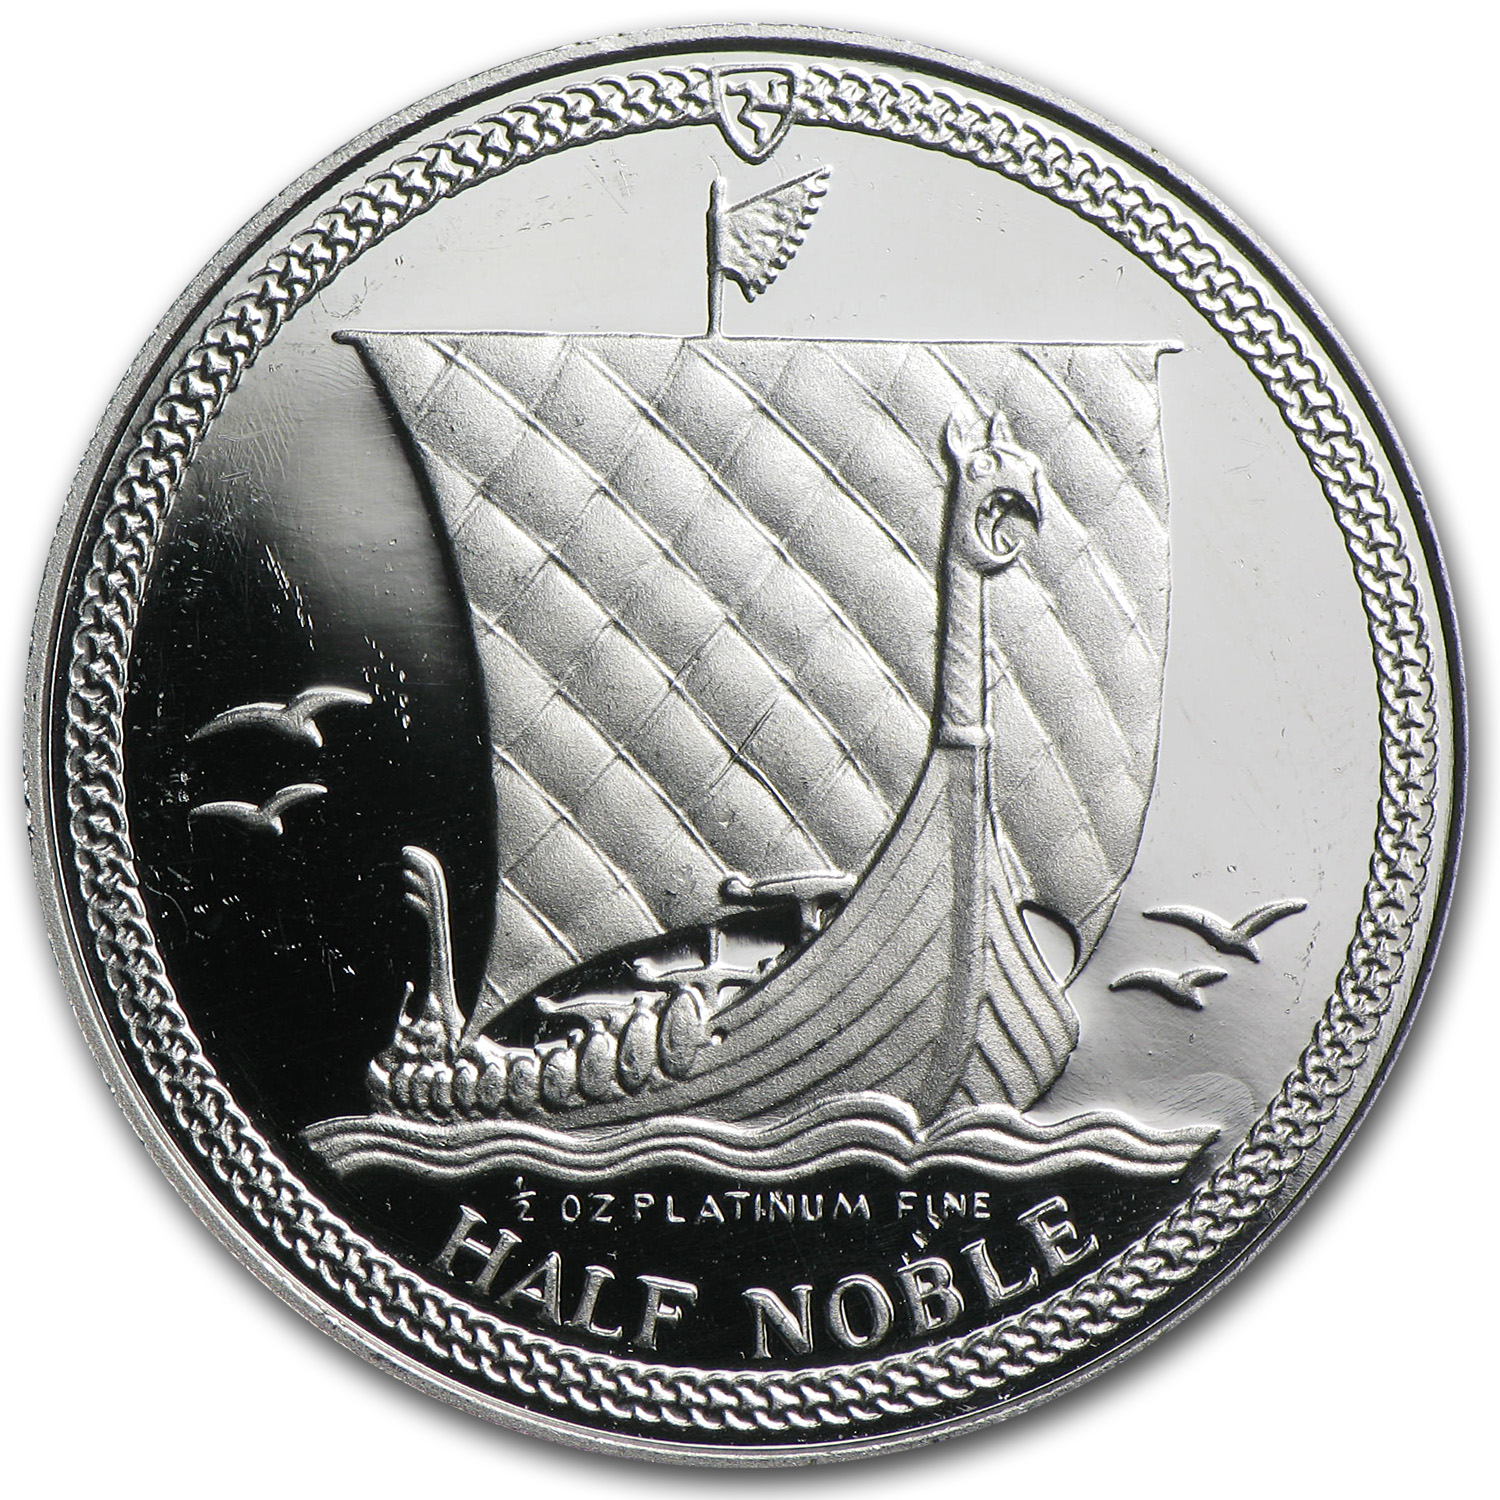 1/2 oz Isle of Man Platinum Noble Proof